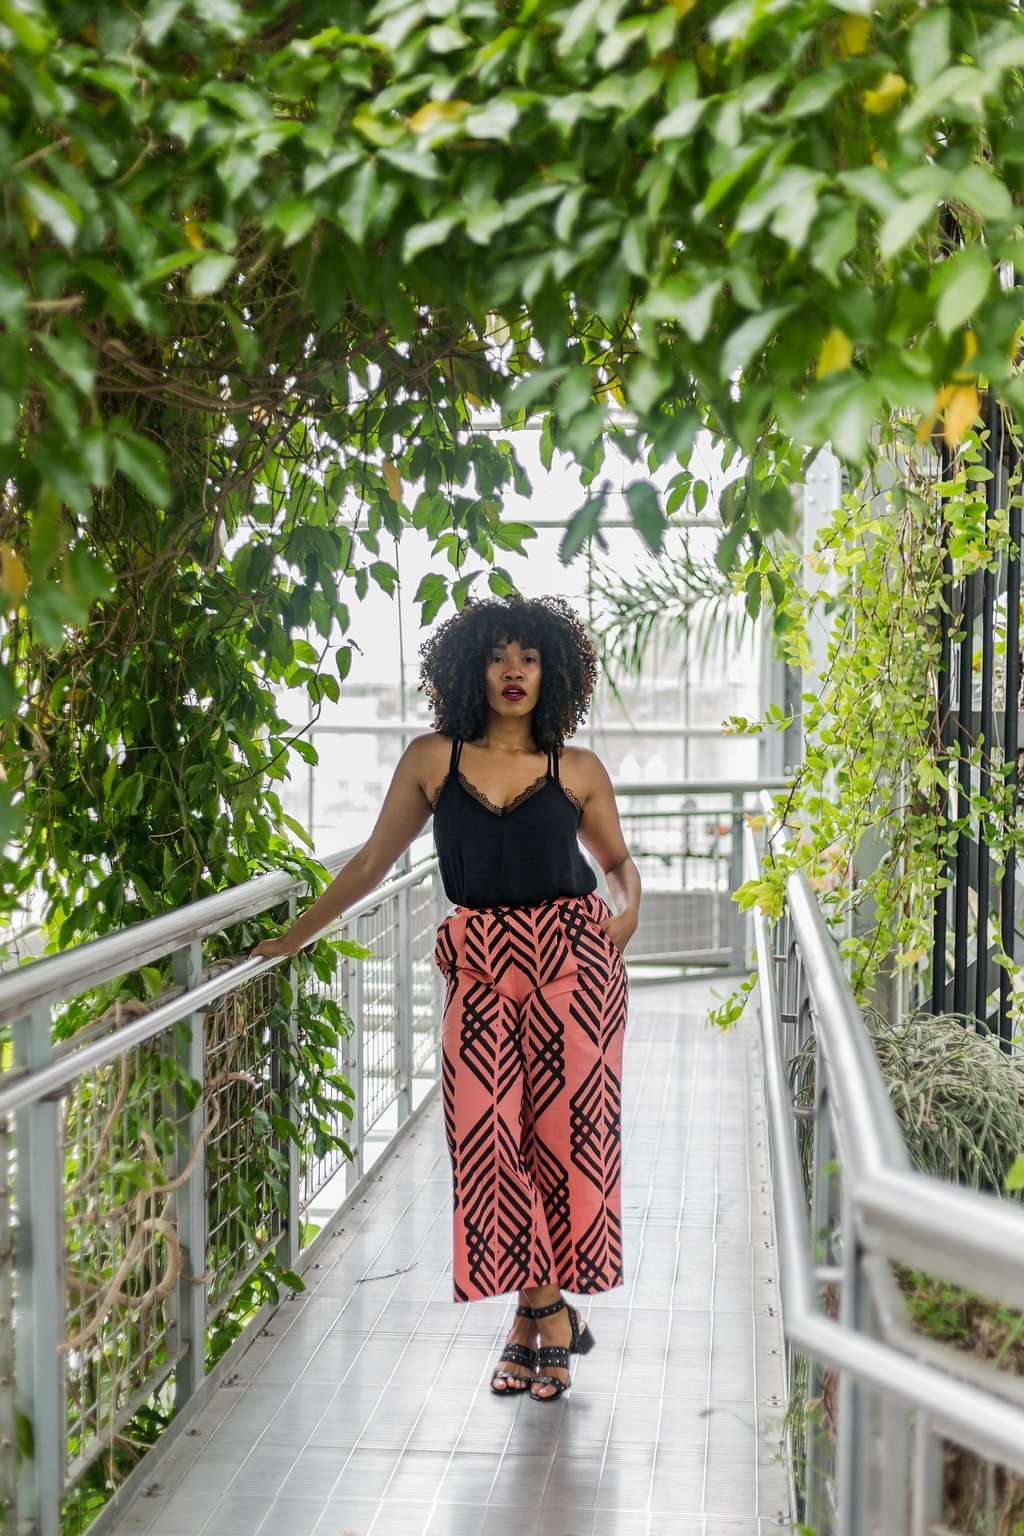 Black cami outfit idea // A Week Of Chic On-The-Go Outfits With Sustainable Fashion Blogger Lindsey Brown on The Good Trade